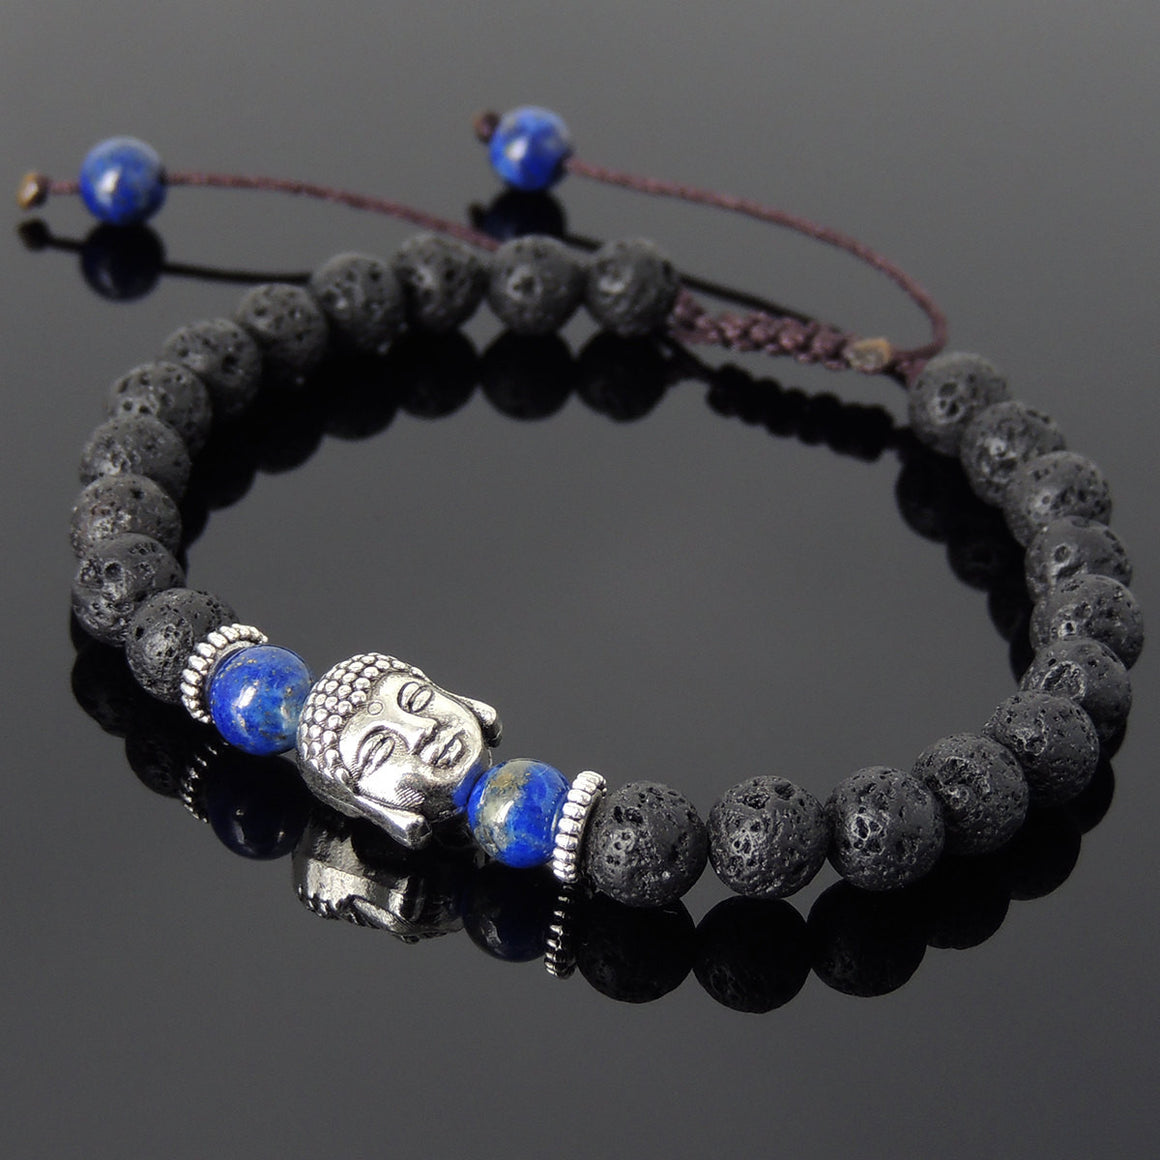 6mm Lava Rock & Lapis Lazuli Adjustable Braided Stone Bracelet with Tibetan Silver Spacers & Guanyin Buddha Bead - Handmade by Gem & Silver TSB213